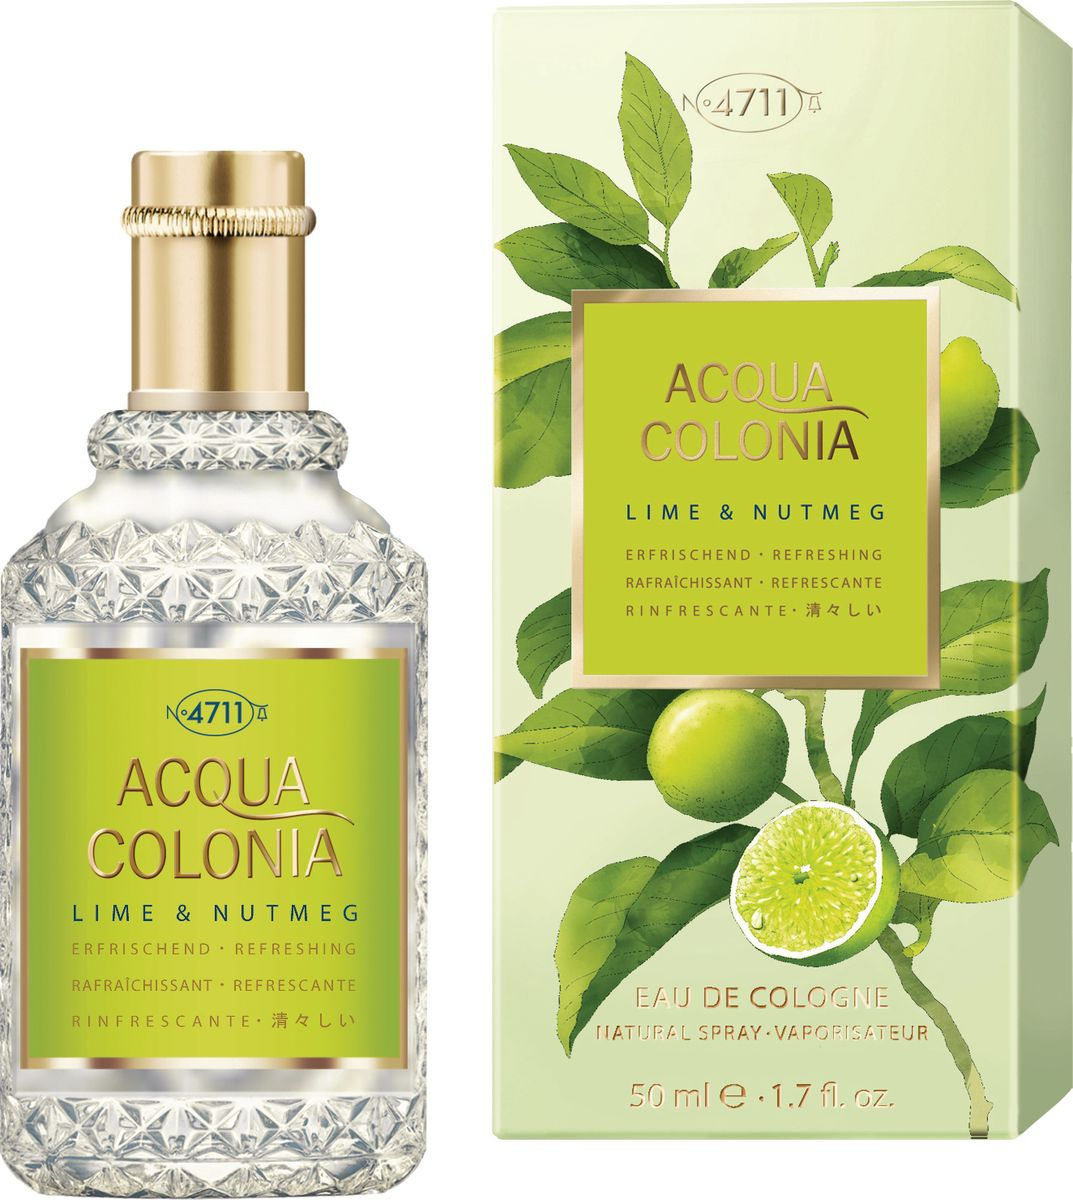 4711 Acqua Colonia Refreshing Lime & Nutmeg Одеколон, 50 мл